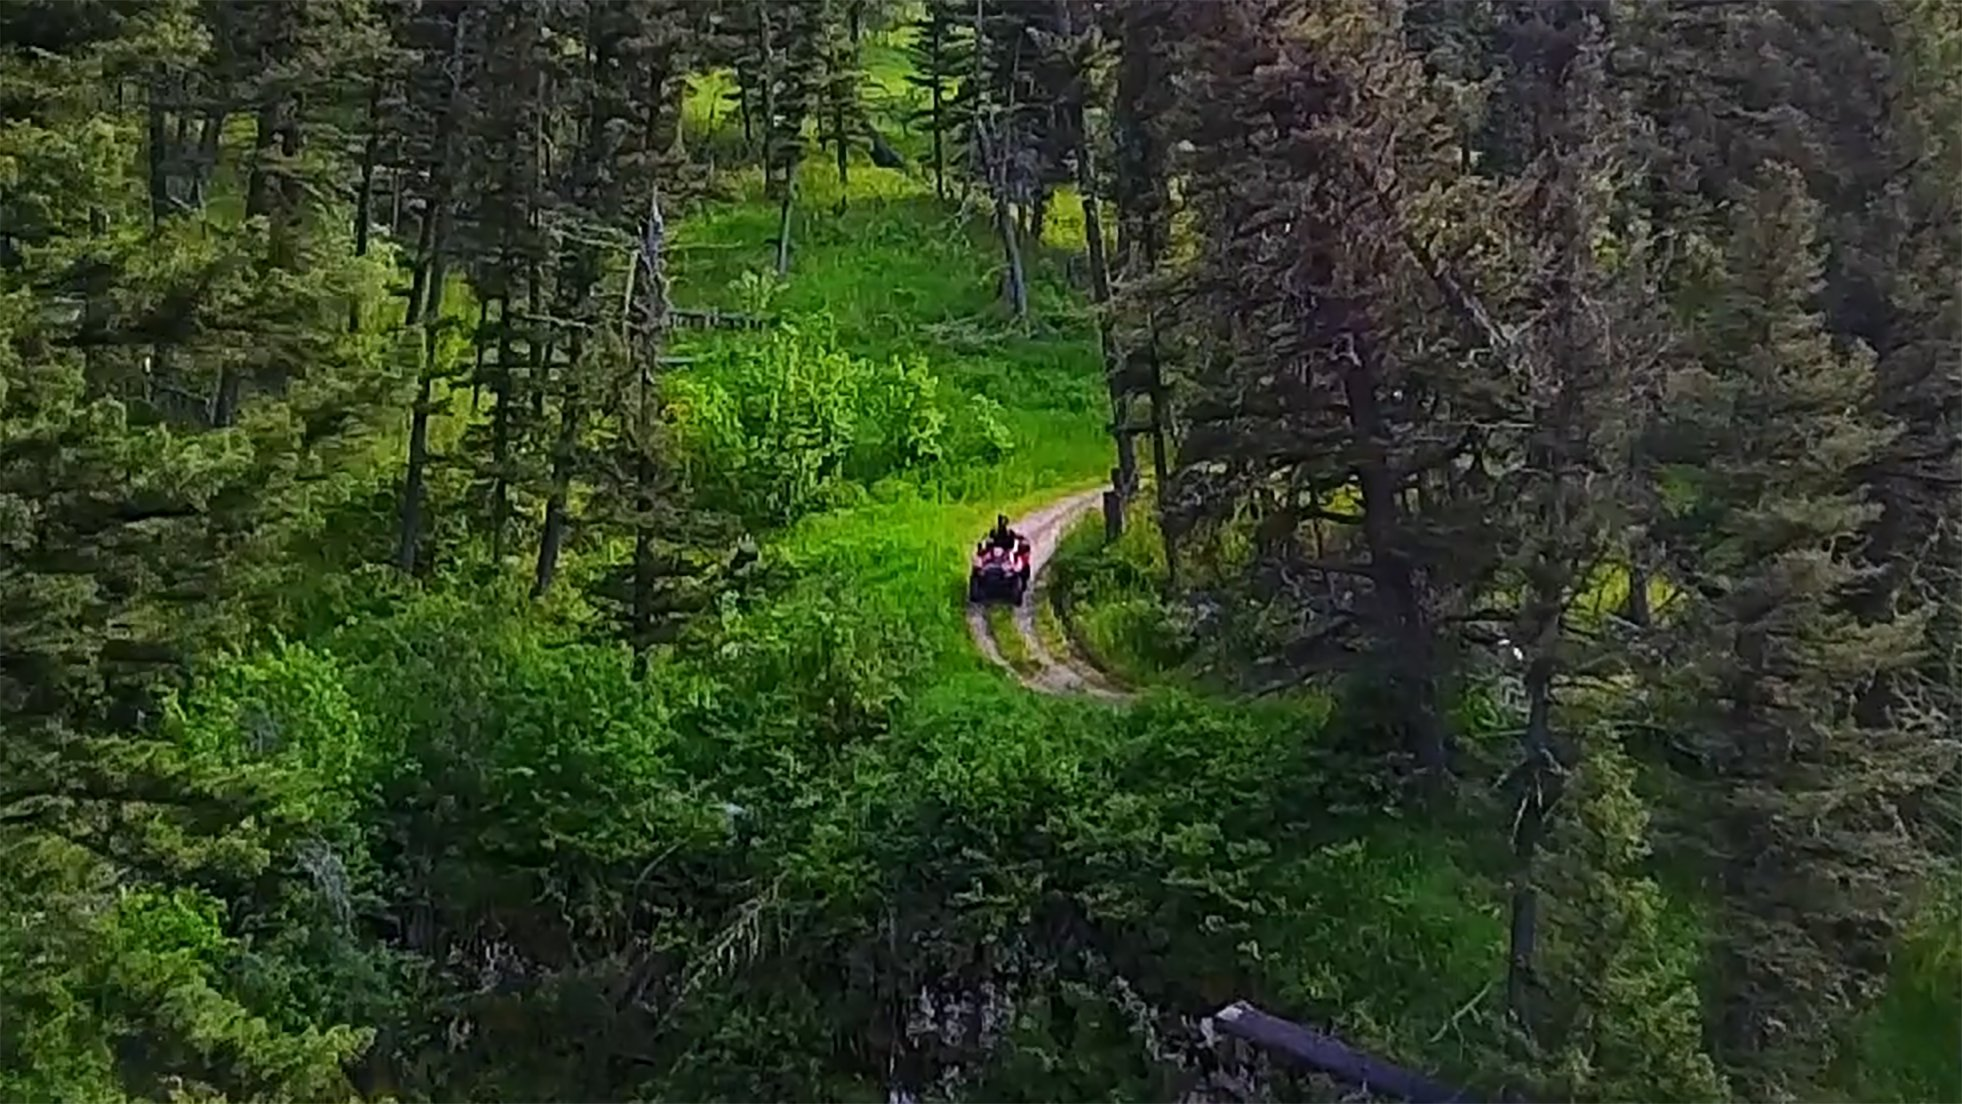 ATVing through the woods